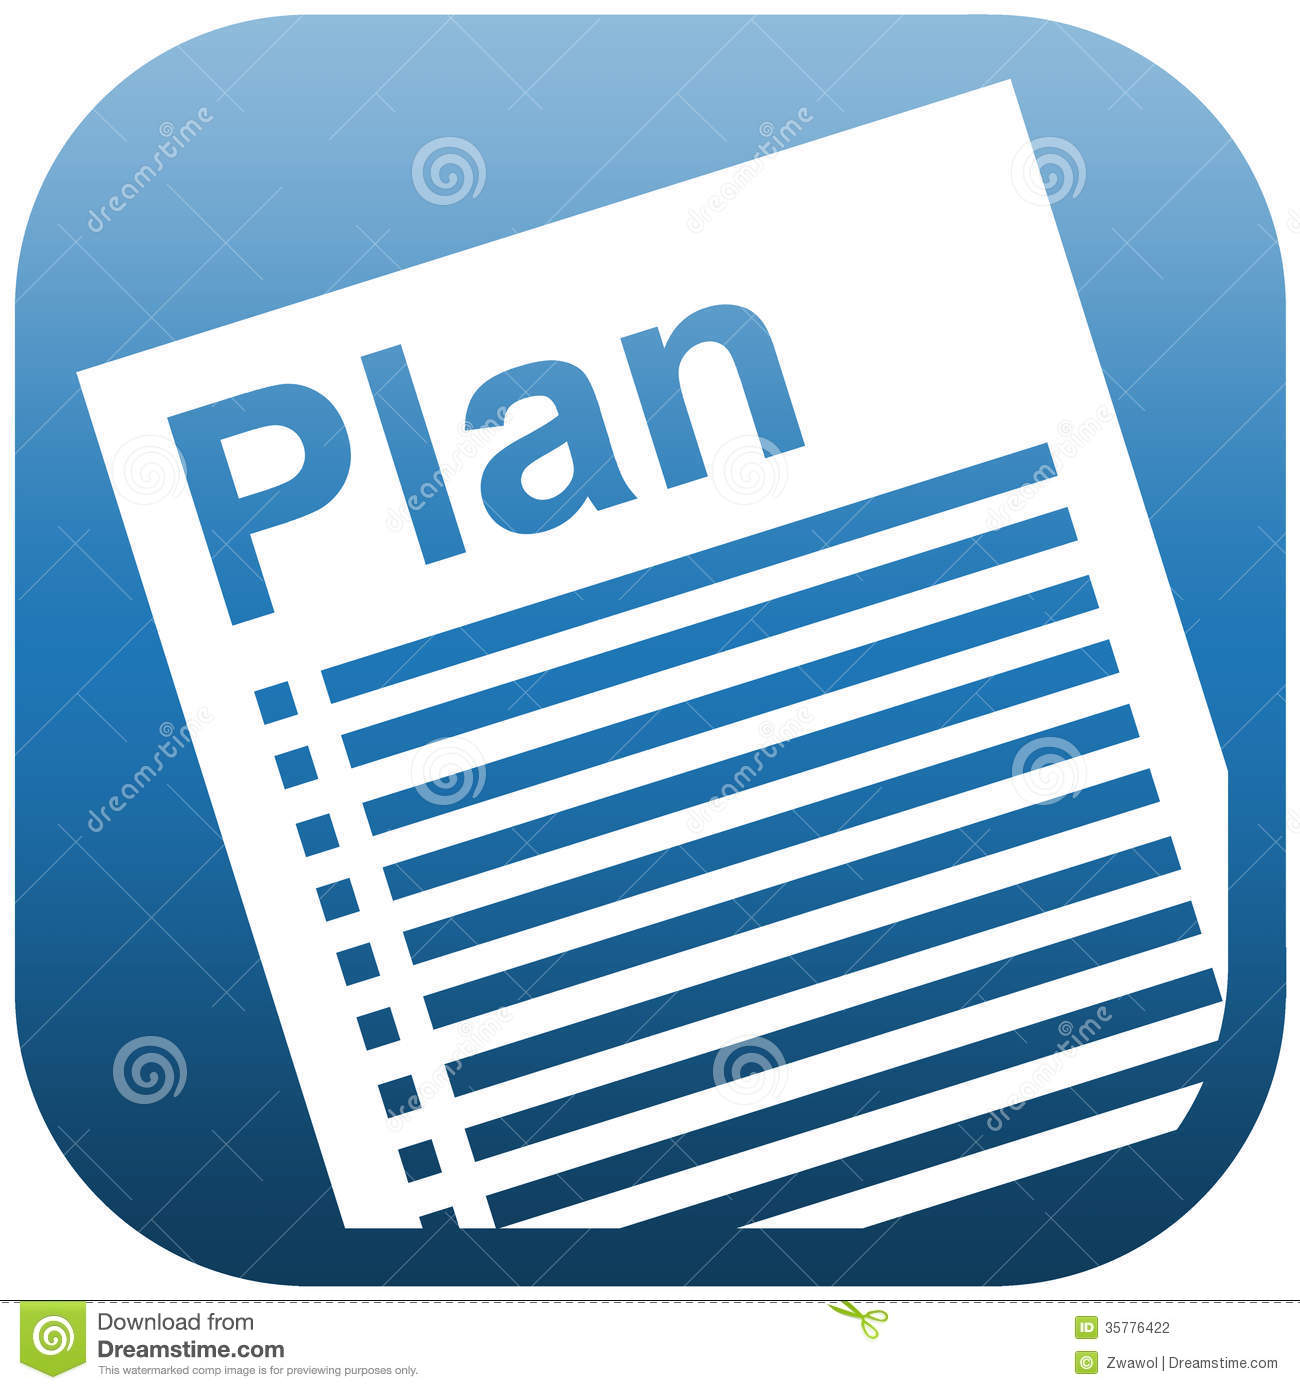 How to Create a 1 Year Business Plan for Photography